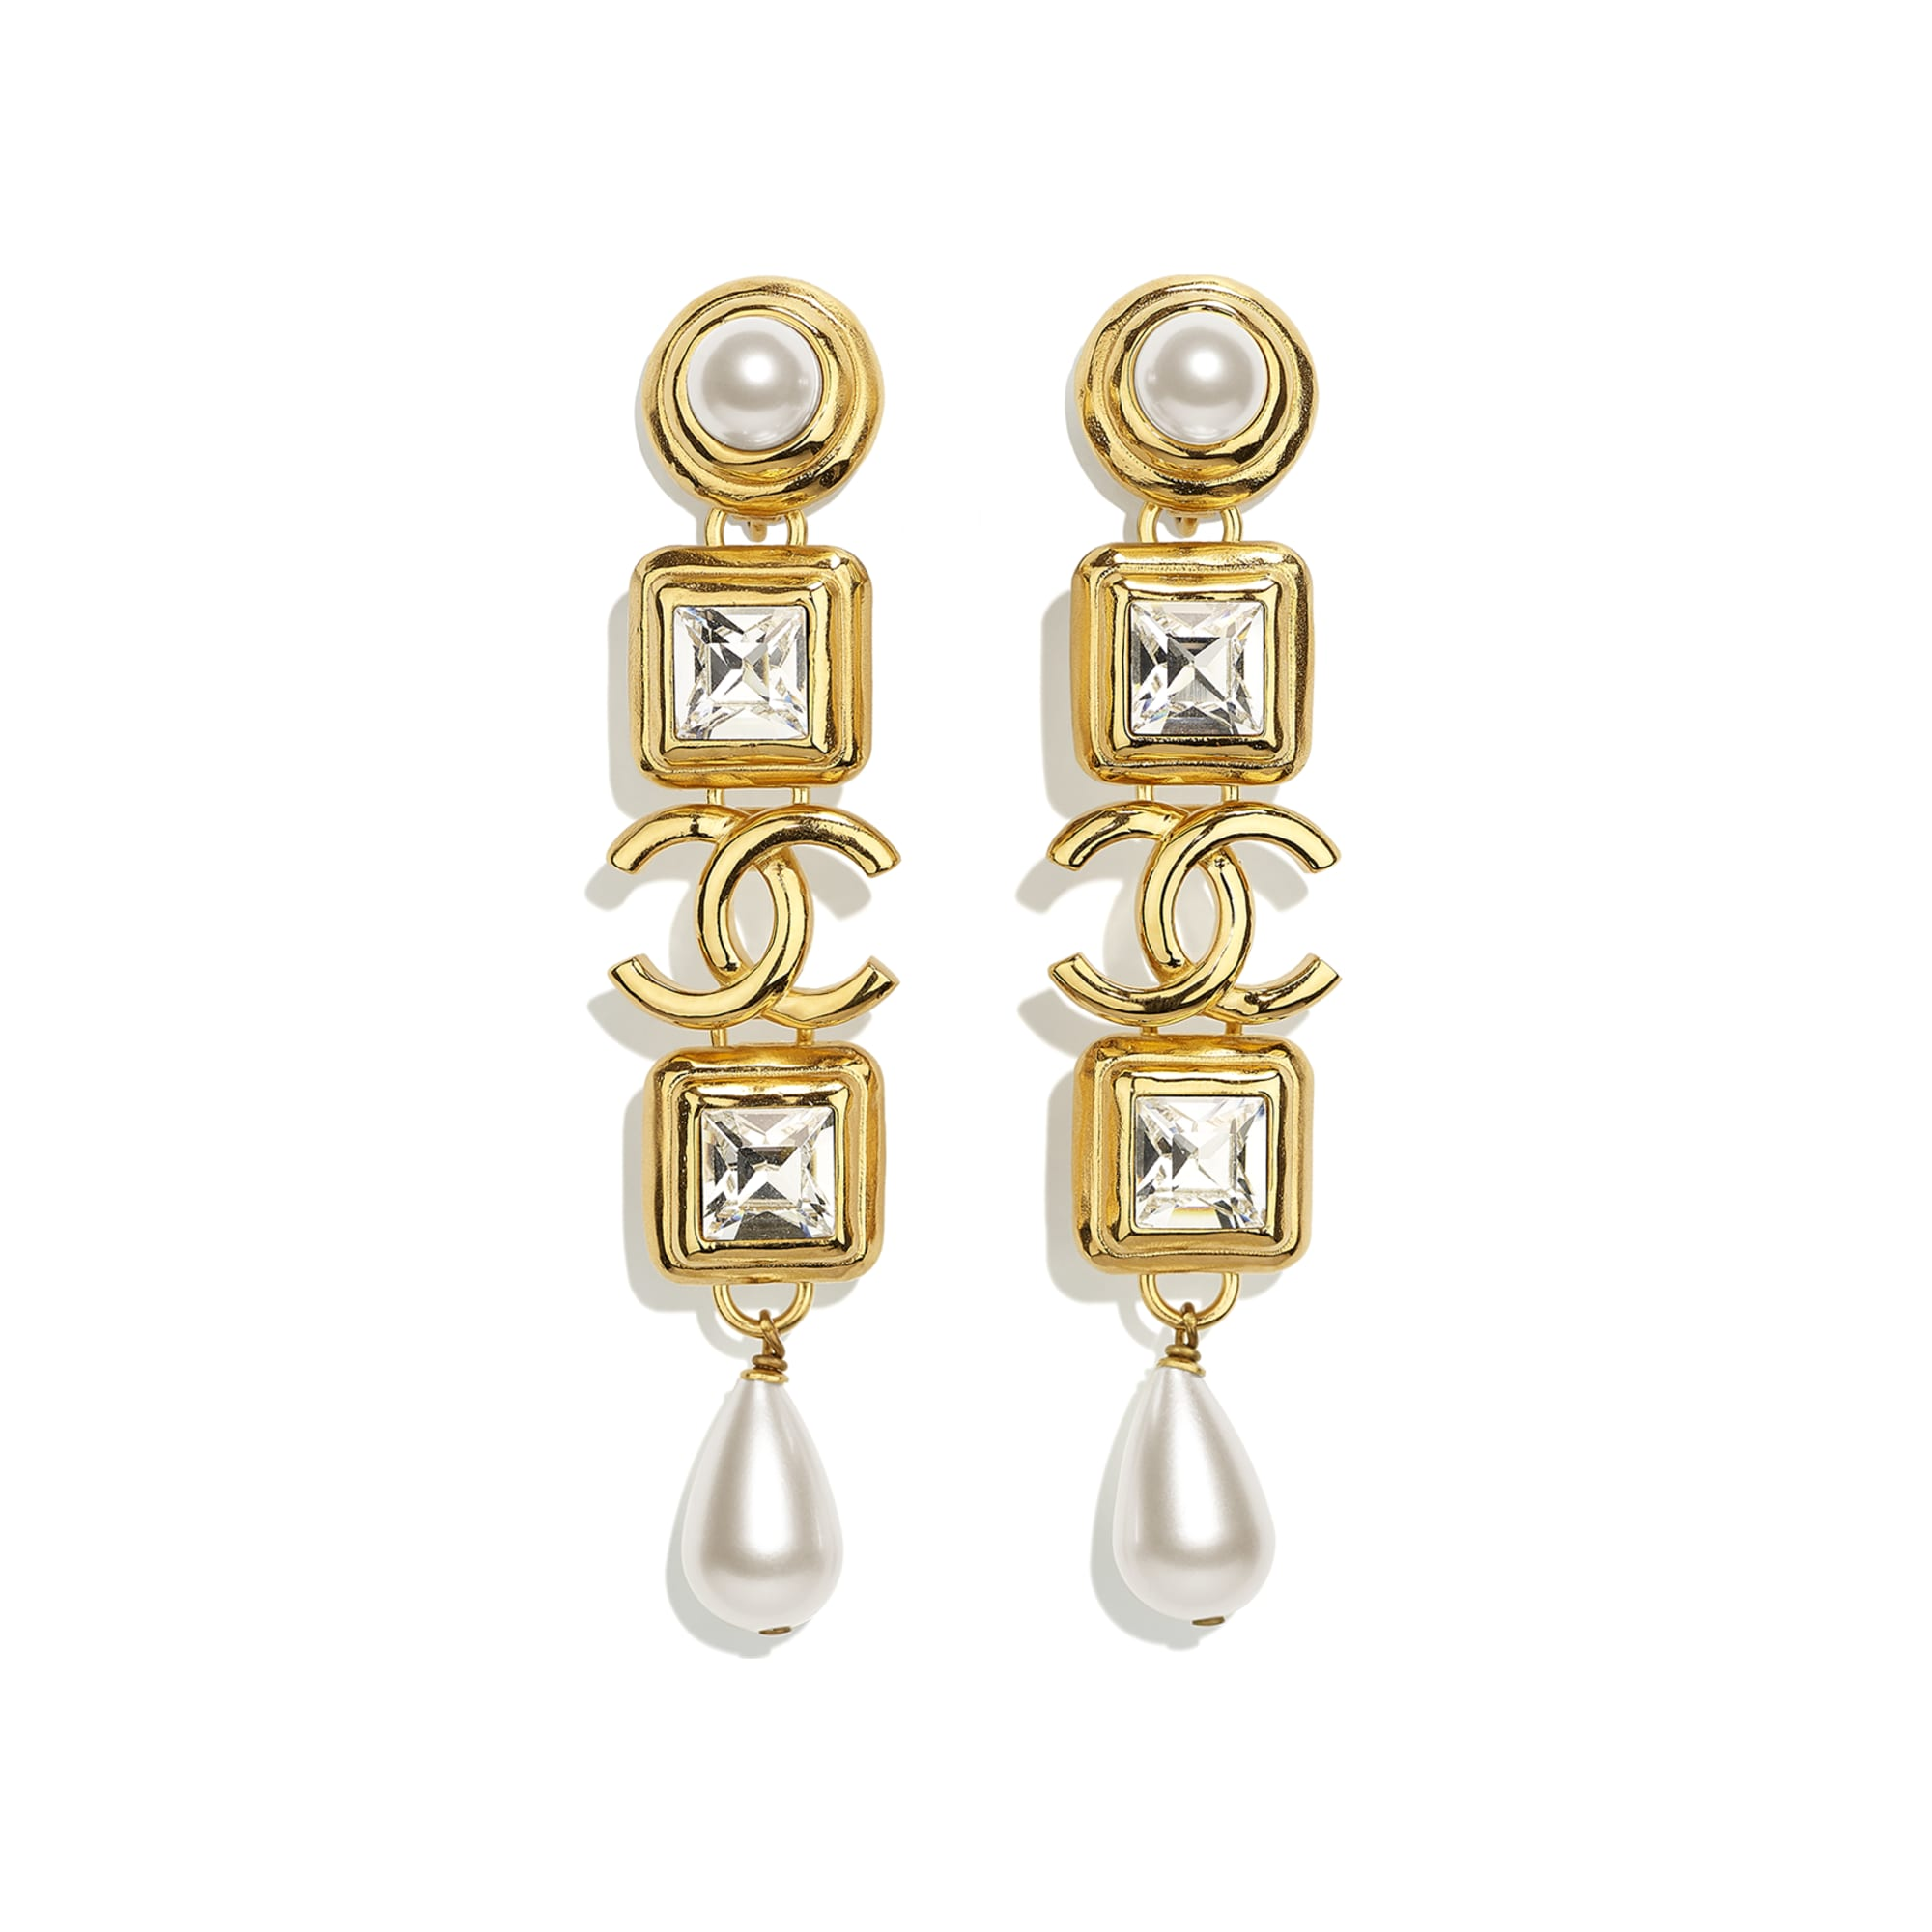 Clip-On Earrings - Gold, Pearly White & Crystal - Metal, Glass Pearls, Imitation Pearls & Diamanté - CHANEL - Default view - see standard sized version